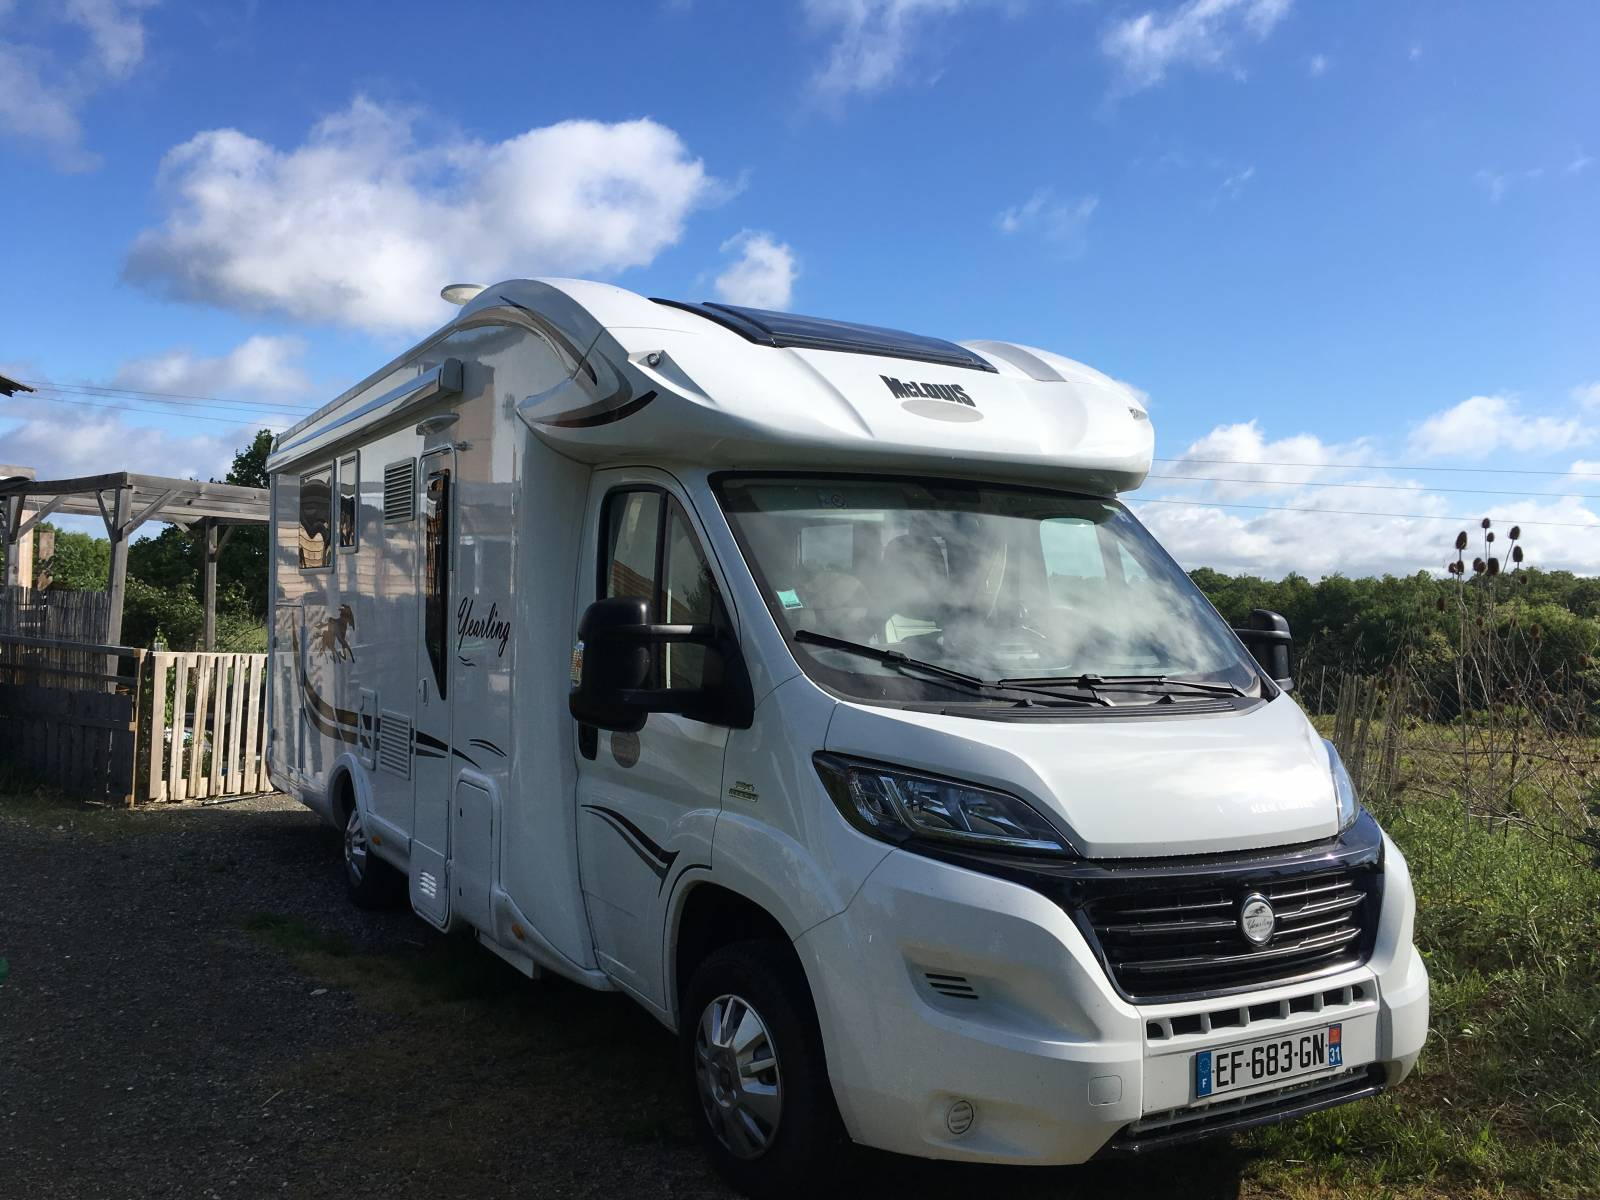 camping-car MC LOUIS YEARLING 77 G